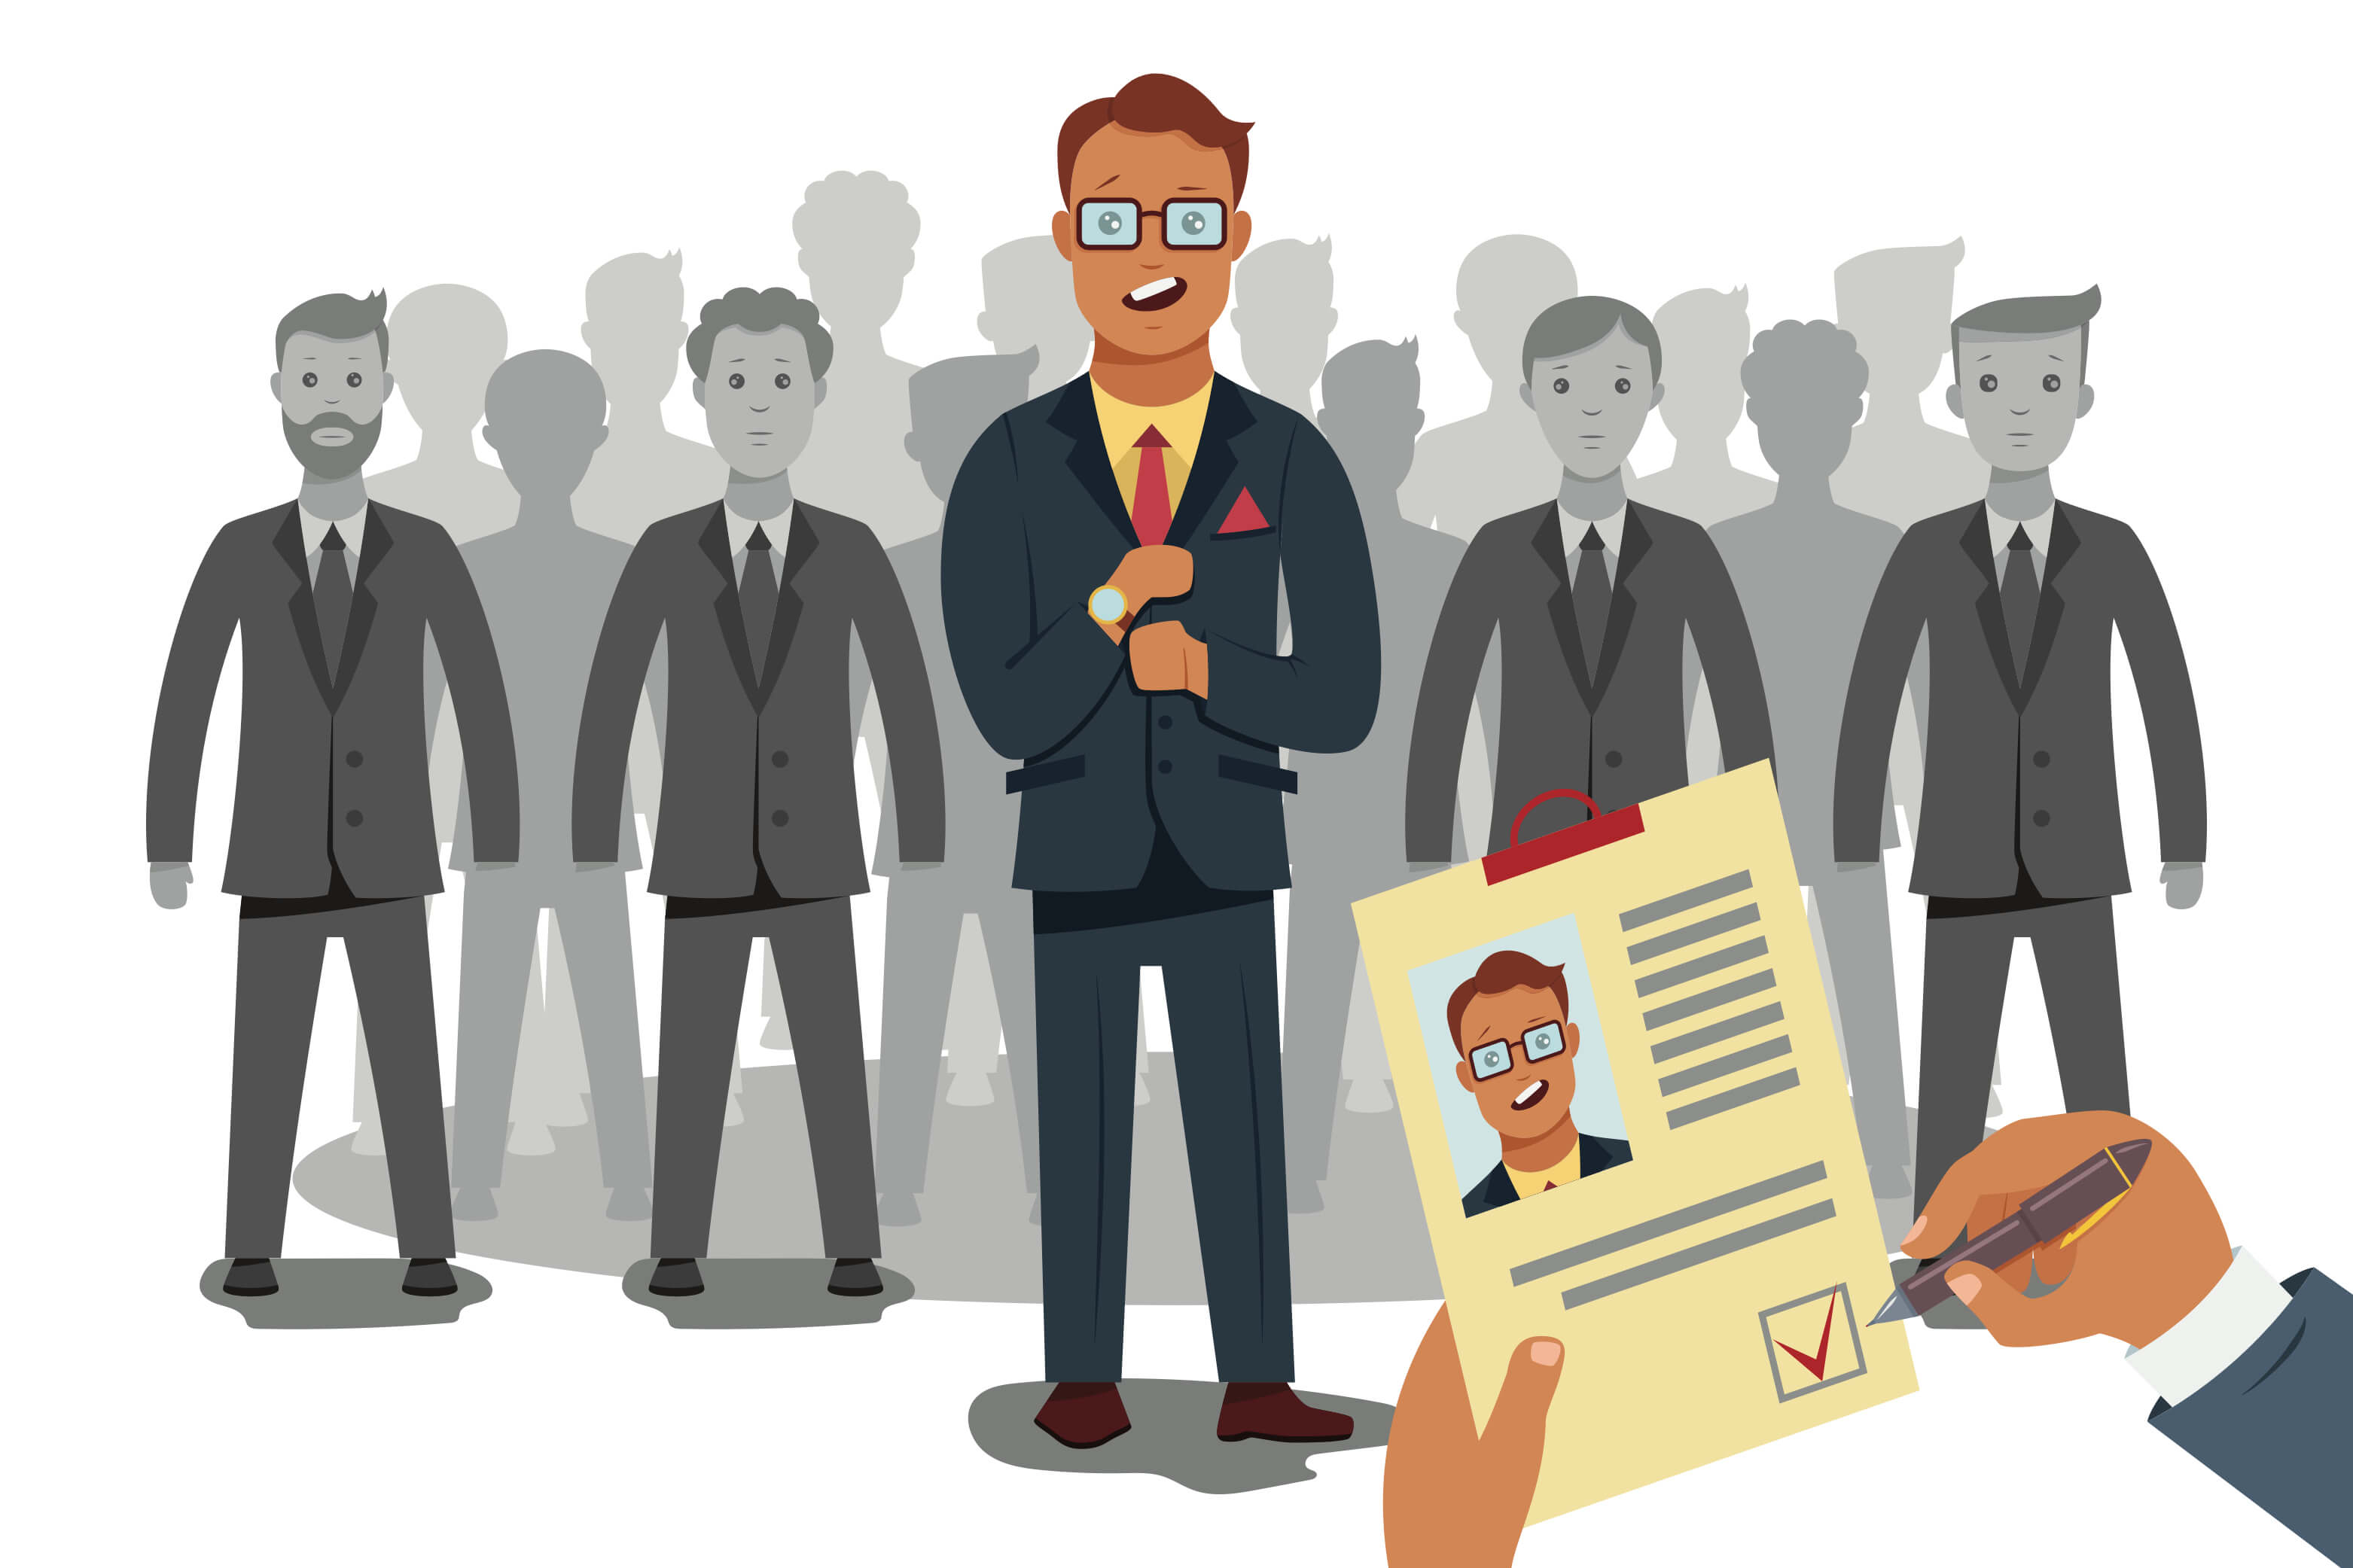 Cartoon illustration of man in dark suit and red tie applying for a job with hiring manager looking at his resume